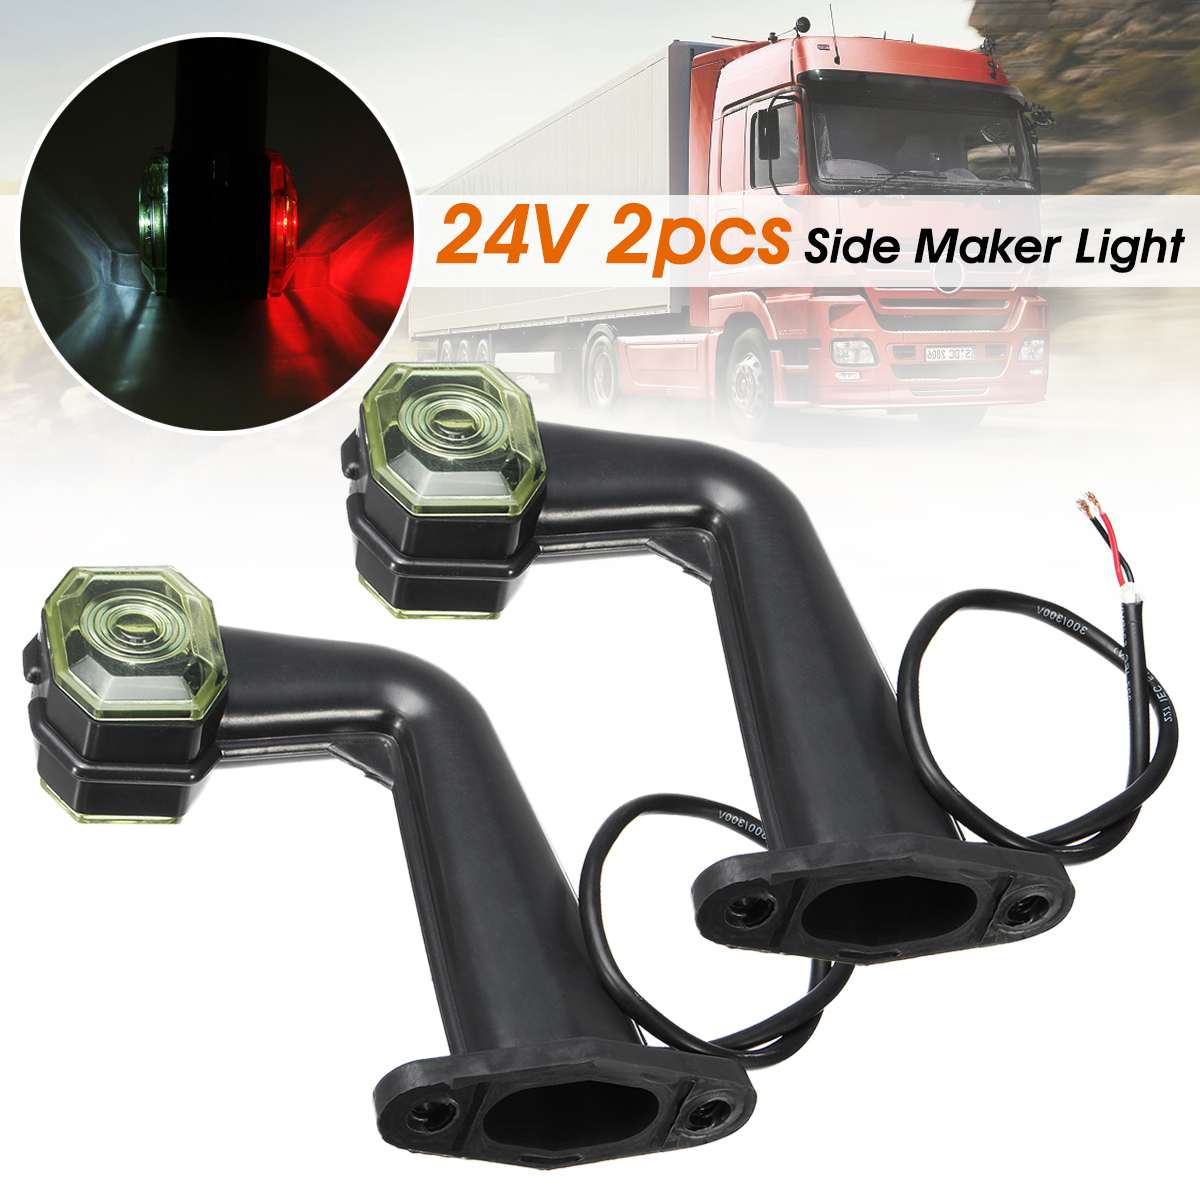 Pair 2 LED 24V Truck Elbow Side Marker Light Indicator Lamp Side Marked Lamp For Car Truck Trailer Lorry